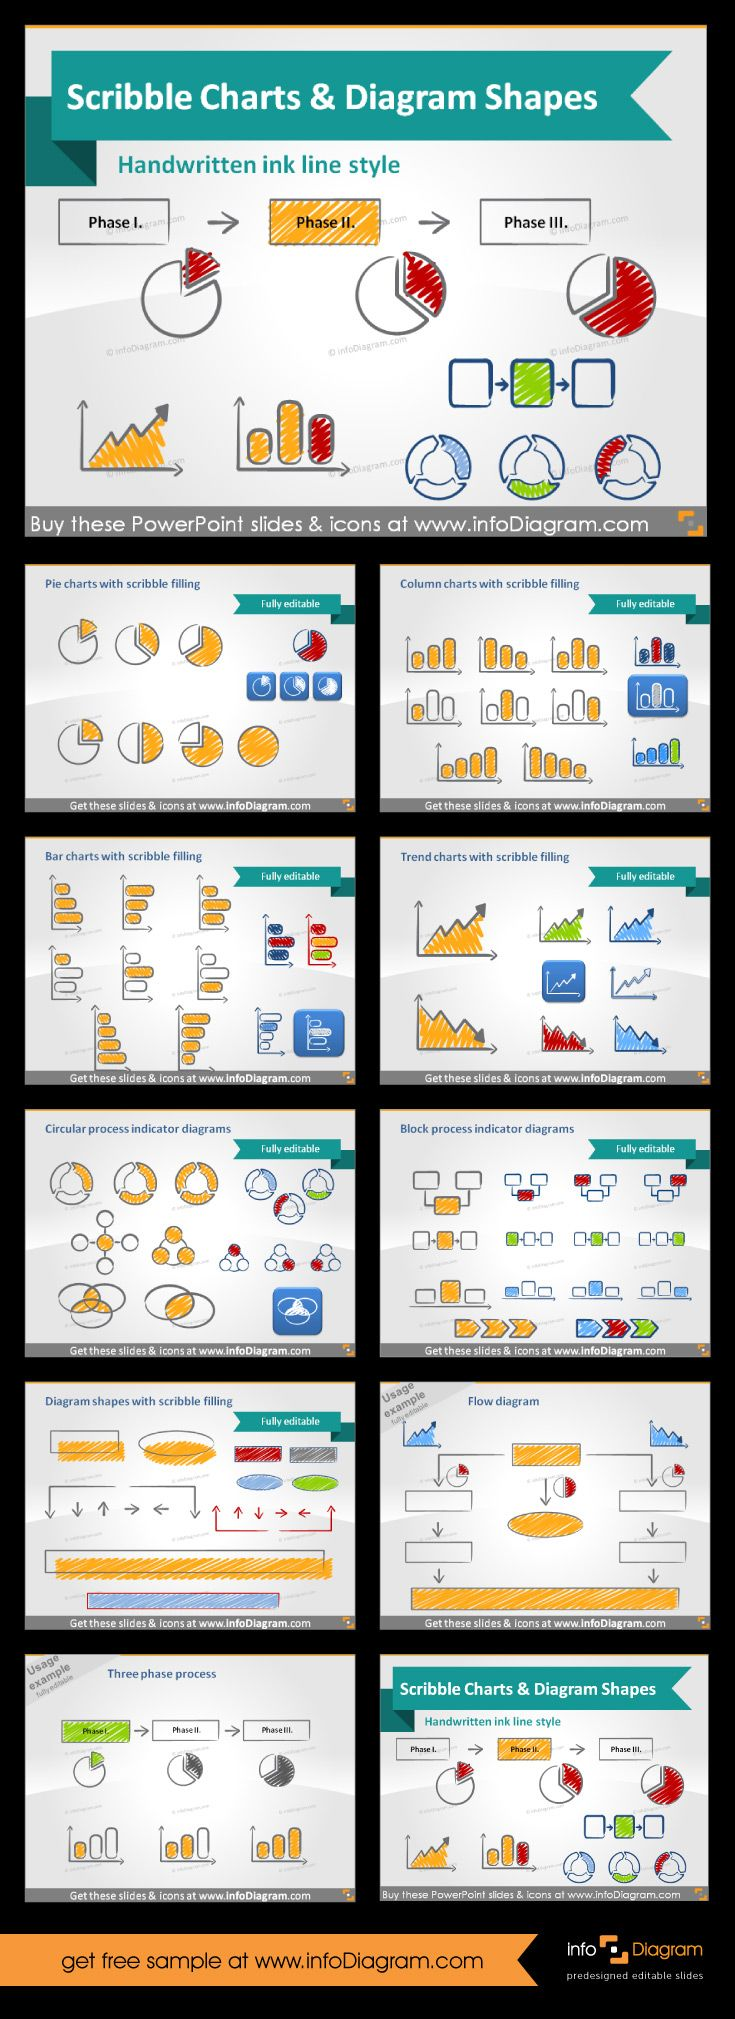 Scribble symbols to create awesome diagrams and processes flows. Icons of laptop, tablet, pencil, mobile and much more. You can create unique sides with these icons for PowerPoint. Edit, resize and change color as you need. #powerpoint #template #theme #scribble